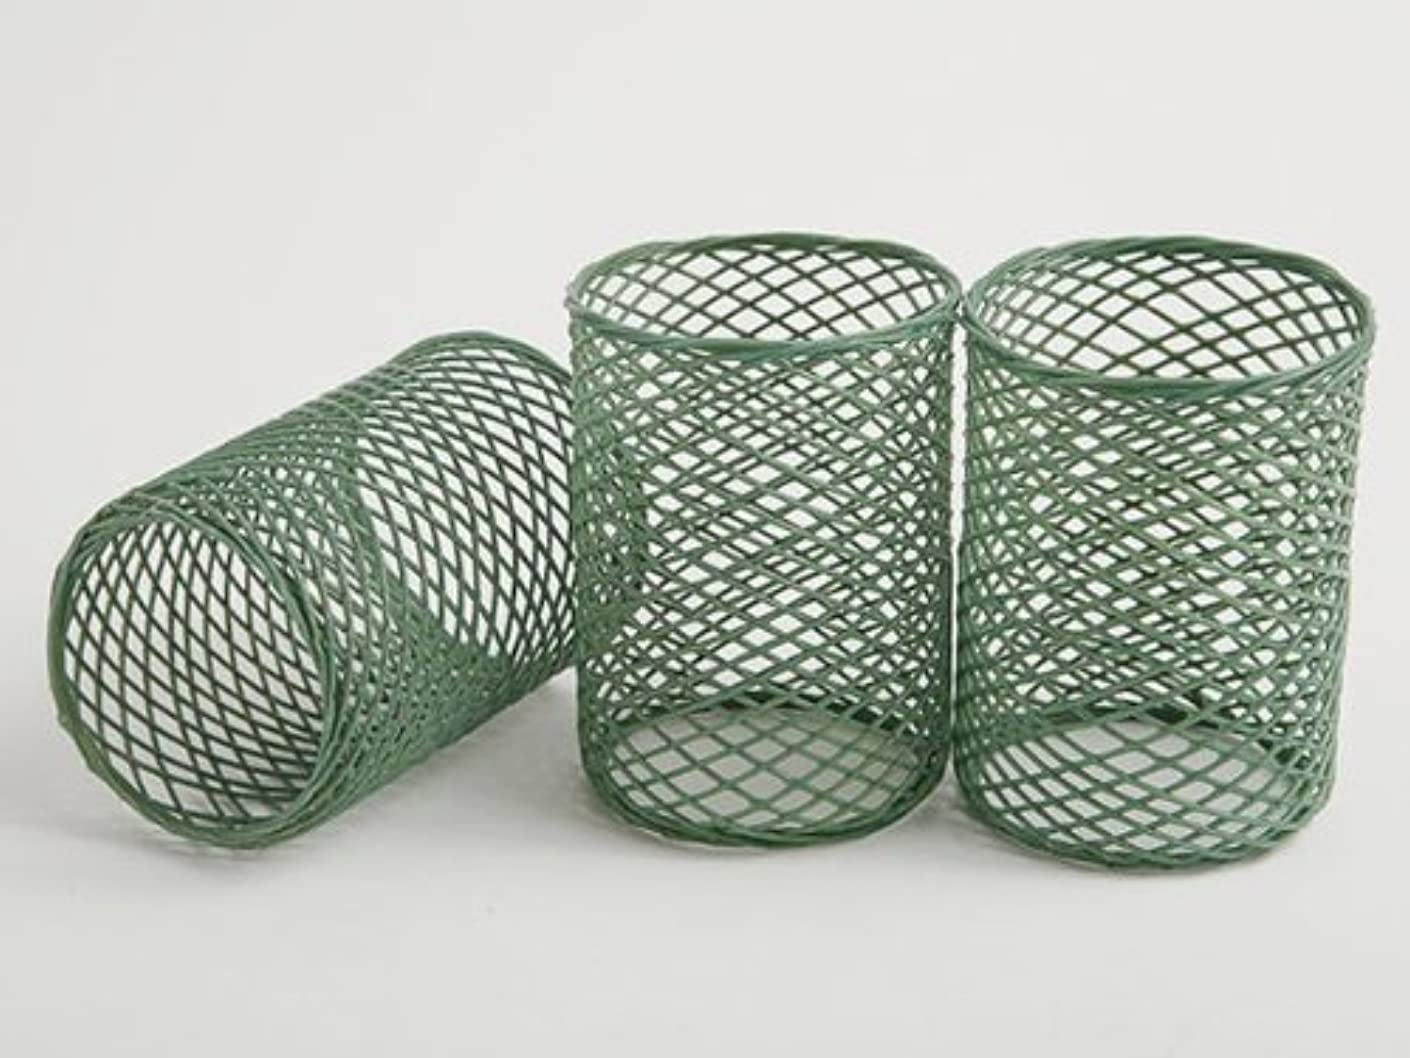 TumbleWeed Rollers - High quality copper wire hair rollers (Green Teal 2